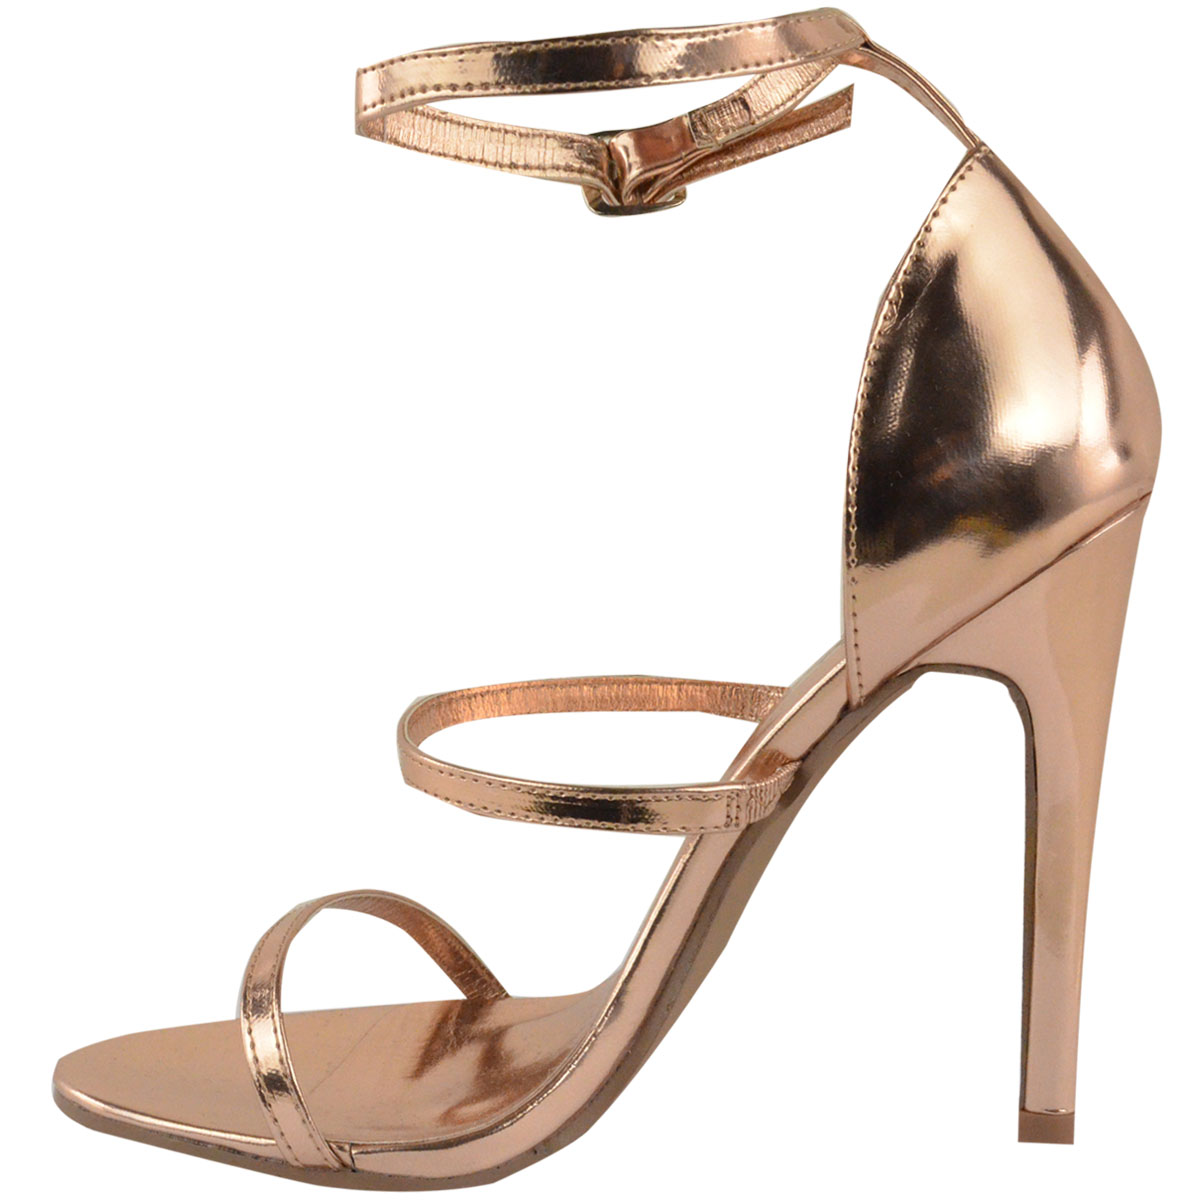 Put together all your favorite outfits with the Keen Eye Rose Gold Ankle Strap Heels! Metallic rose gold vegan leather shapes a padded toe band and ankle strap. 3